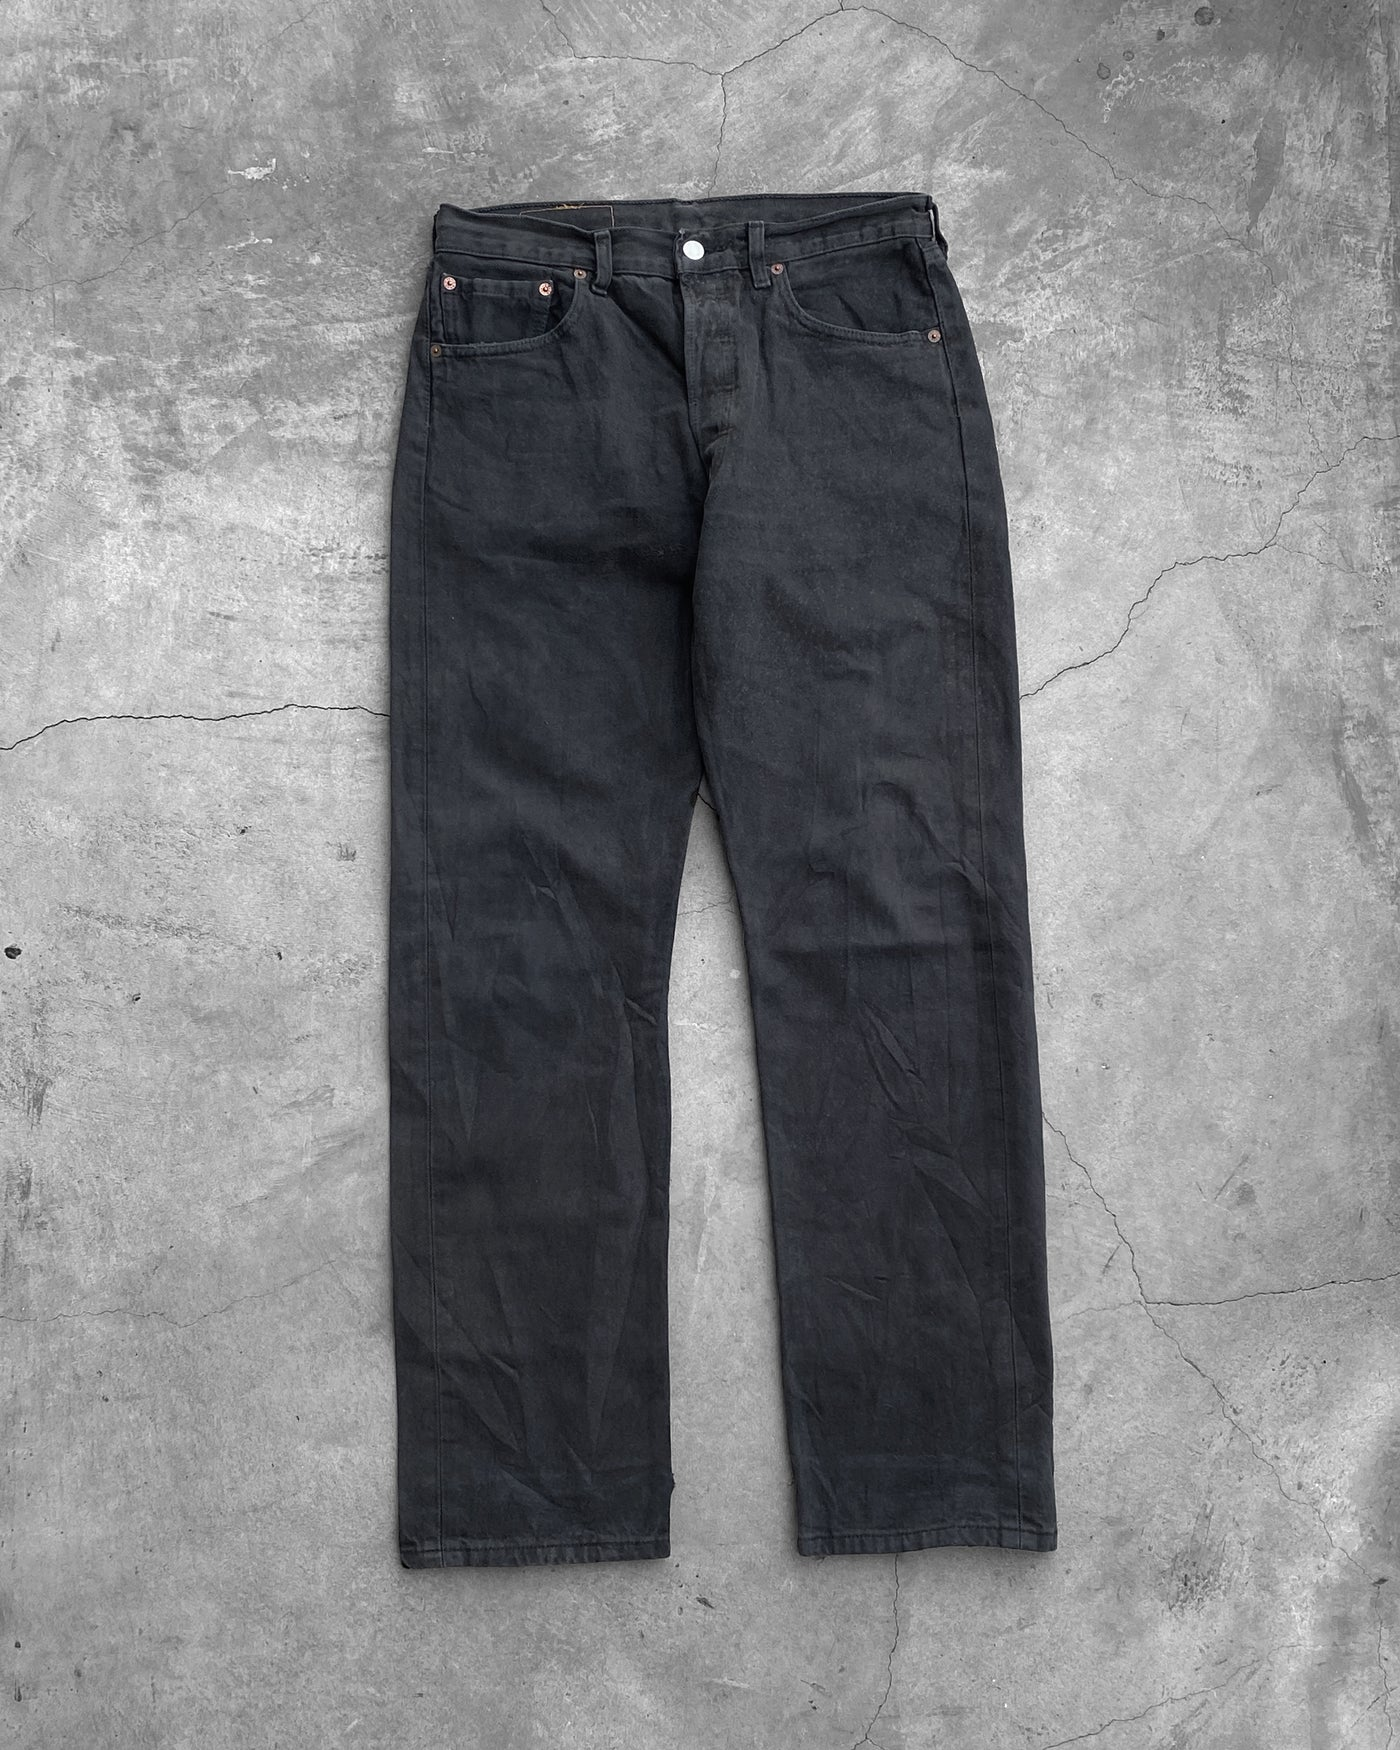 Levi's 501 Crotch Repair Faded Black Jeans - 1990s